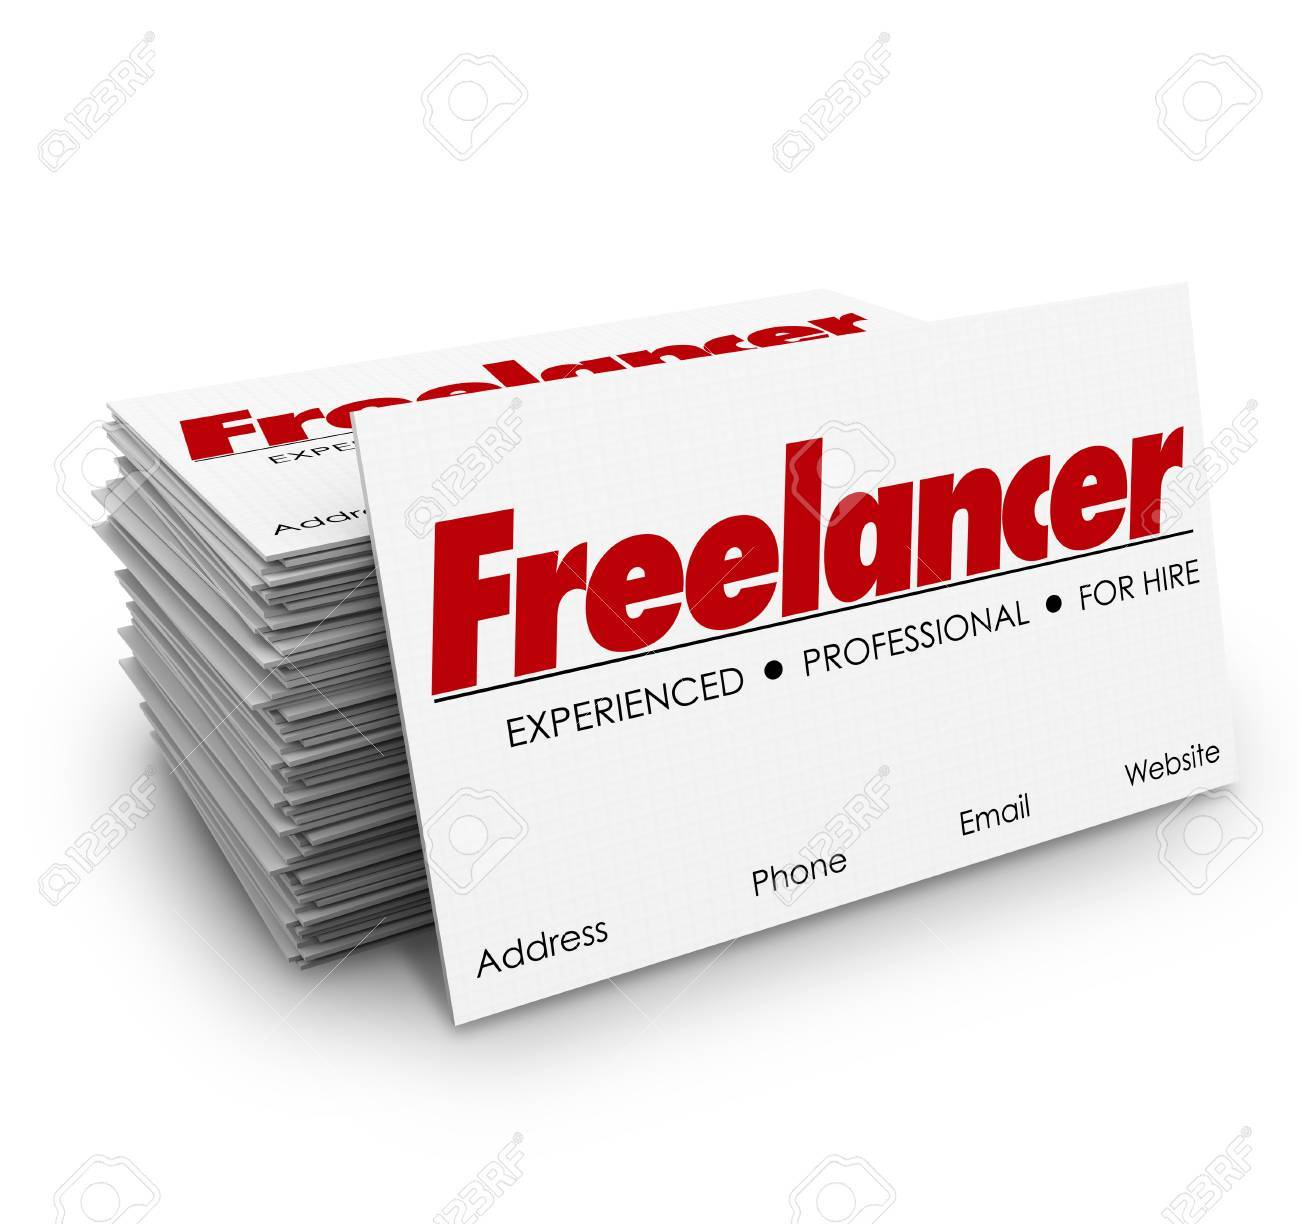 freelancer independent contractor for hire business card stack or pile stock photo 46722293